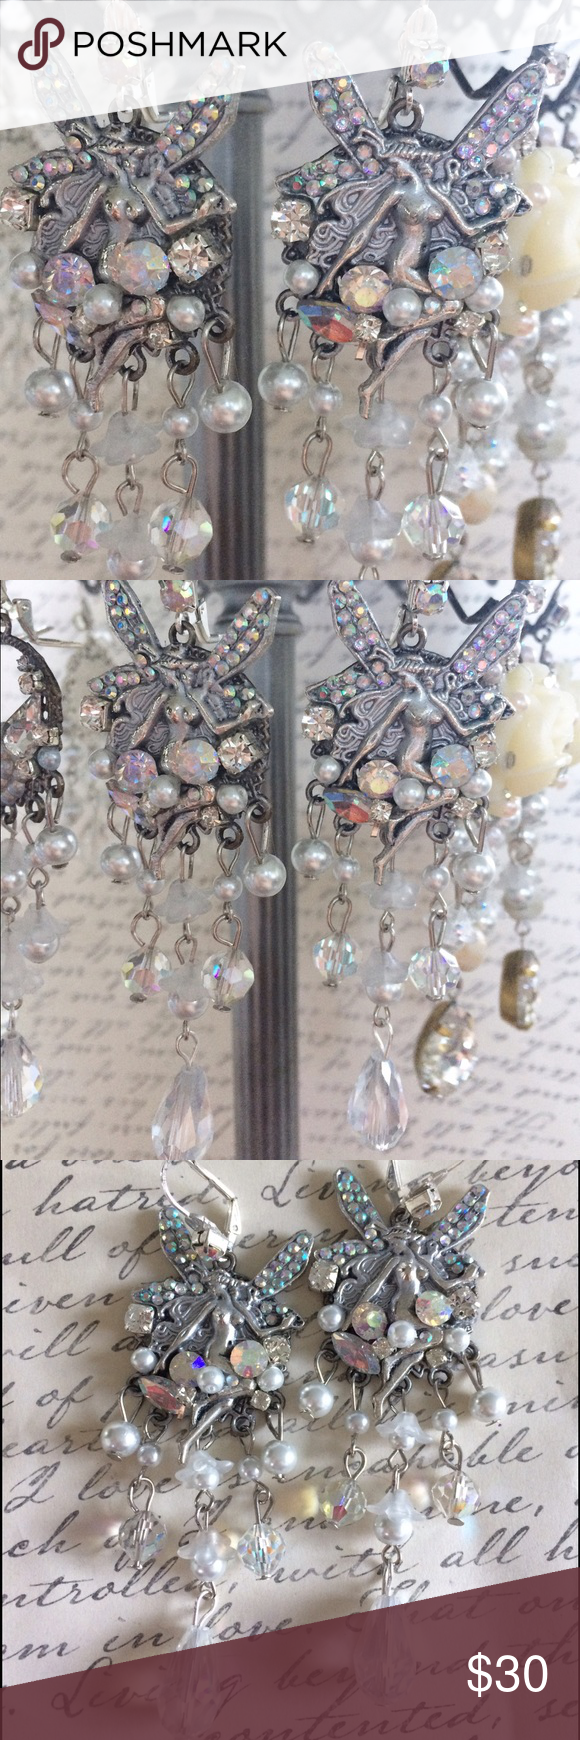 Fairy bridal earrings These are silver bridal fantasy earrings great for a bride who has a whimsical side. These are an over the top hand made one of a kind art by Caitlin Ranck Caitlin Ranck  Jewelry Earrings